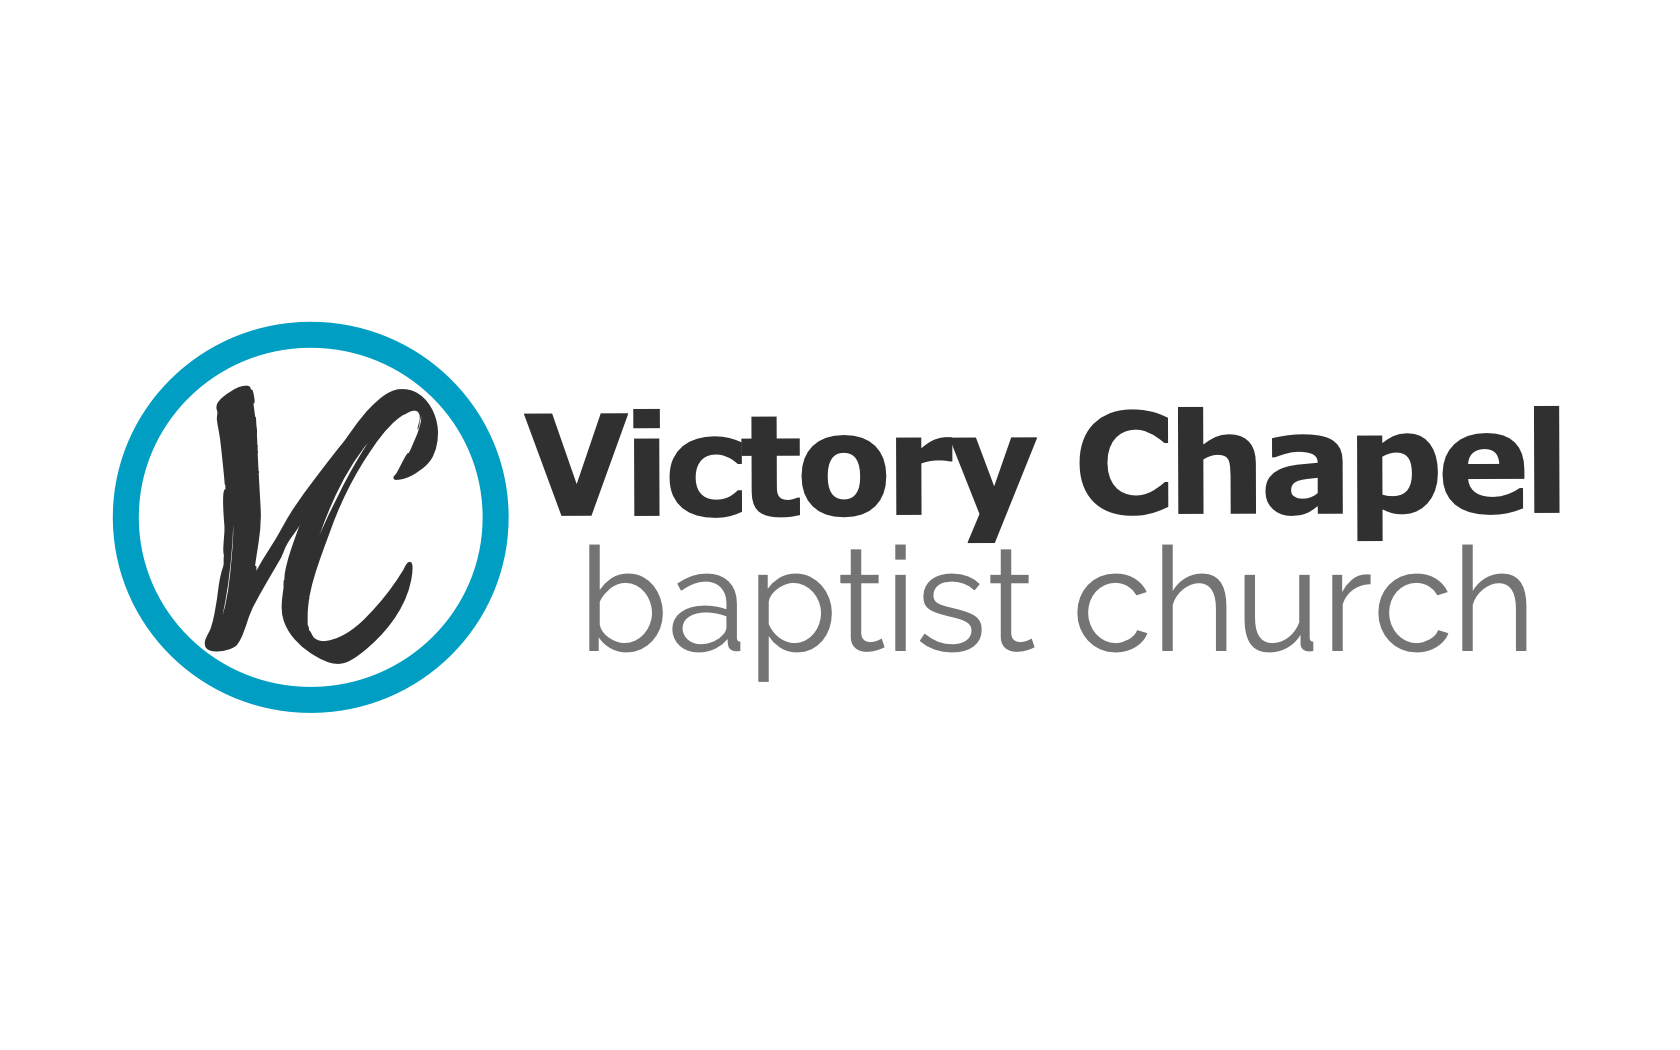 Victory Chapel Baptist Church